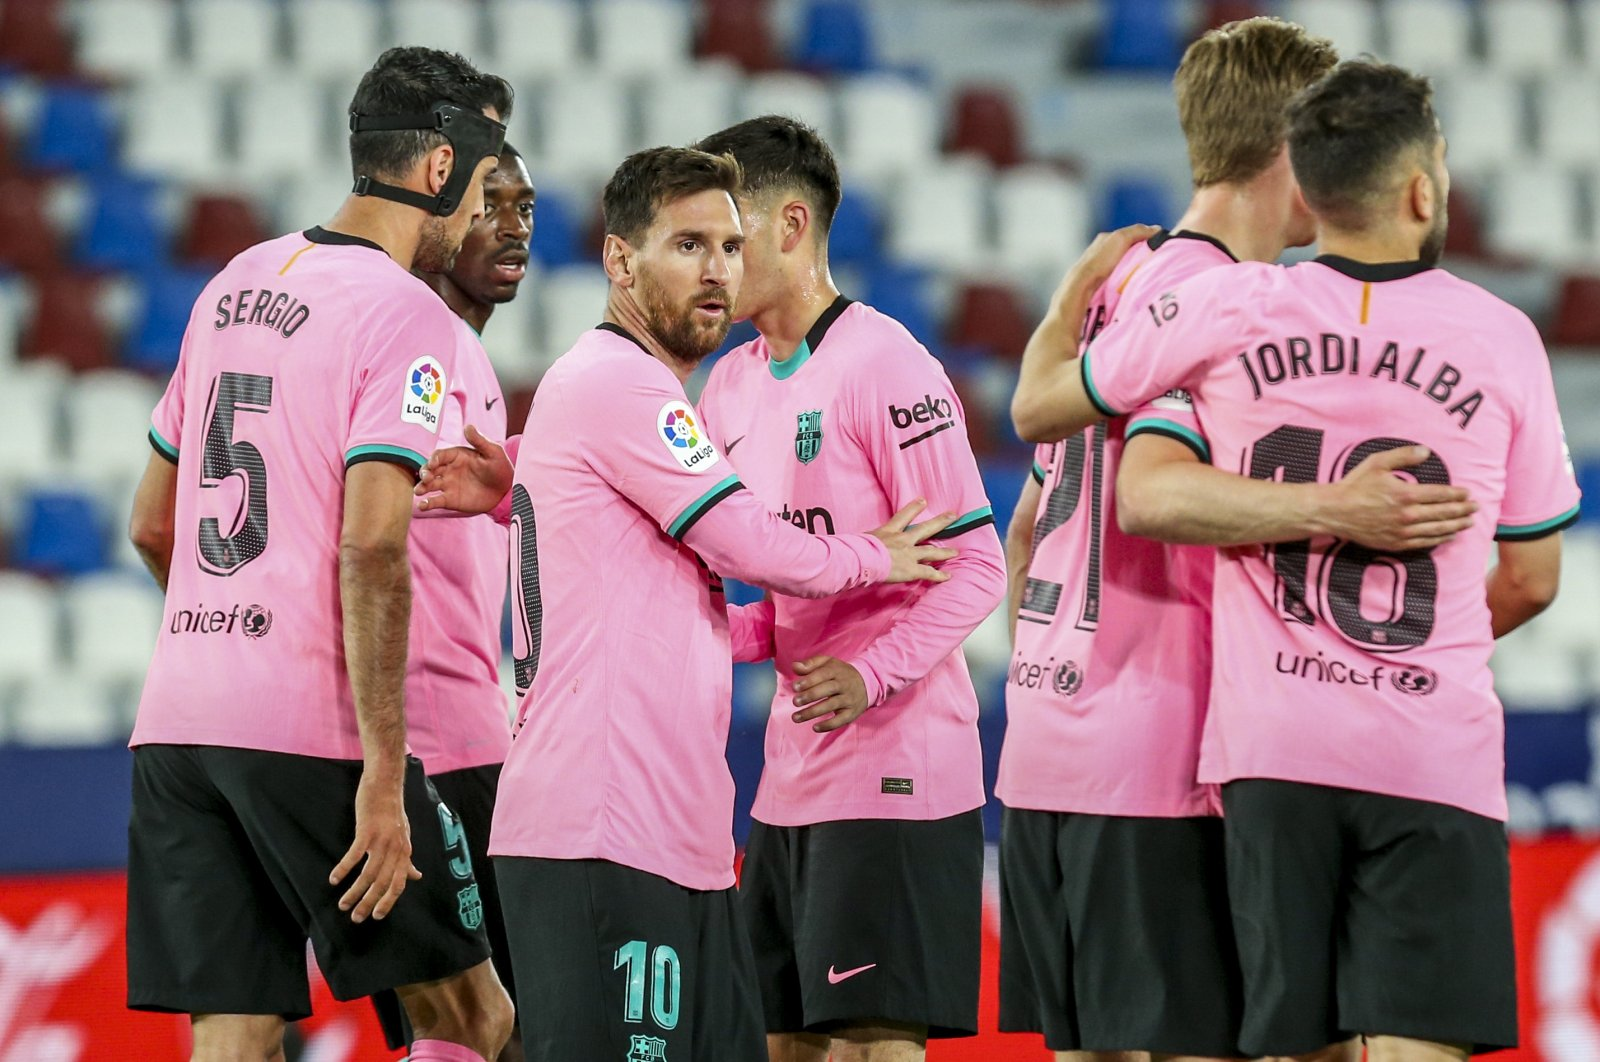 Barcelona players celebrate a goal during a La Liga match against Levante, in Valencia, Spain, May 11, 2021. Barcelona is known for its tiki-taka play style, which involves frequent short passes. (AP Photo)